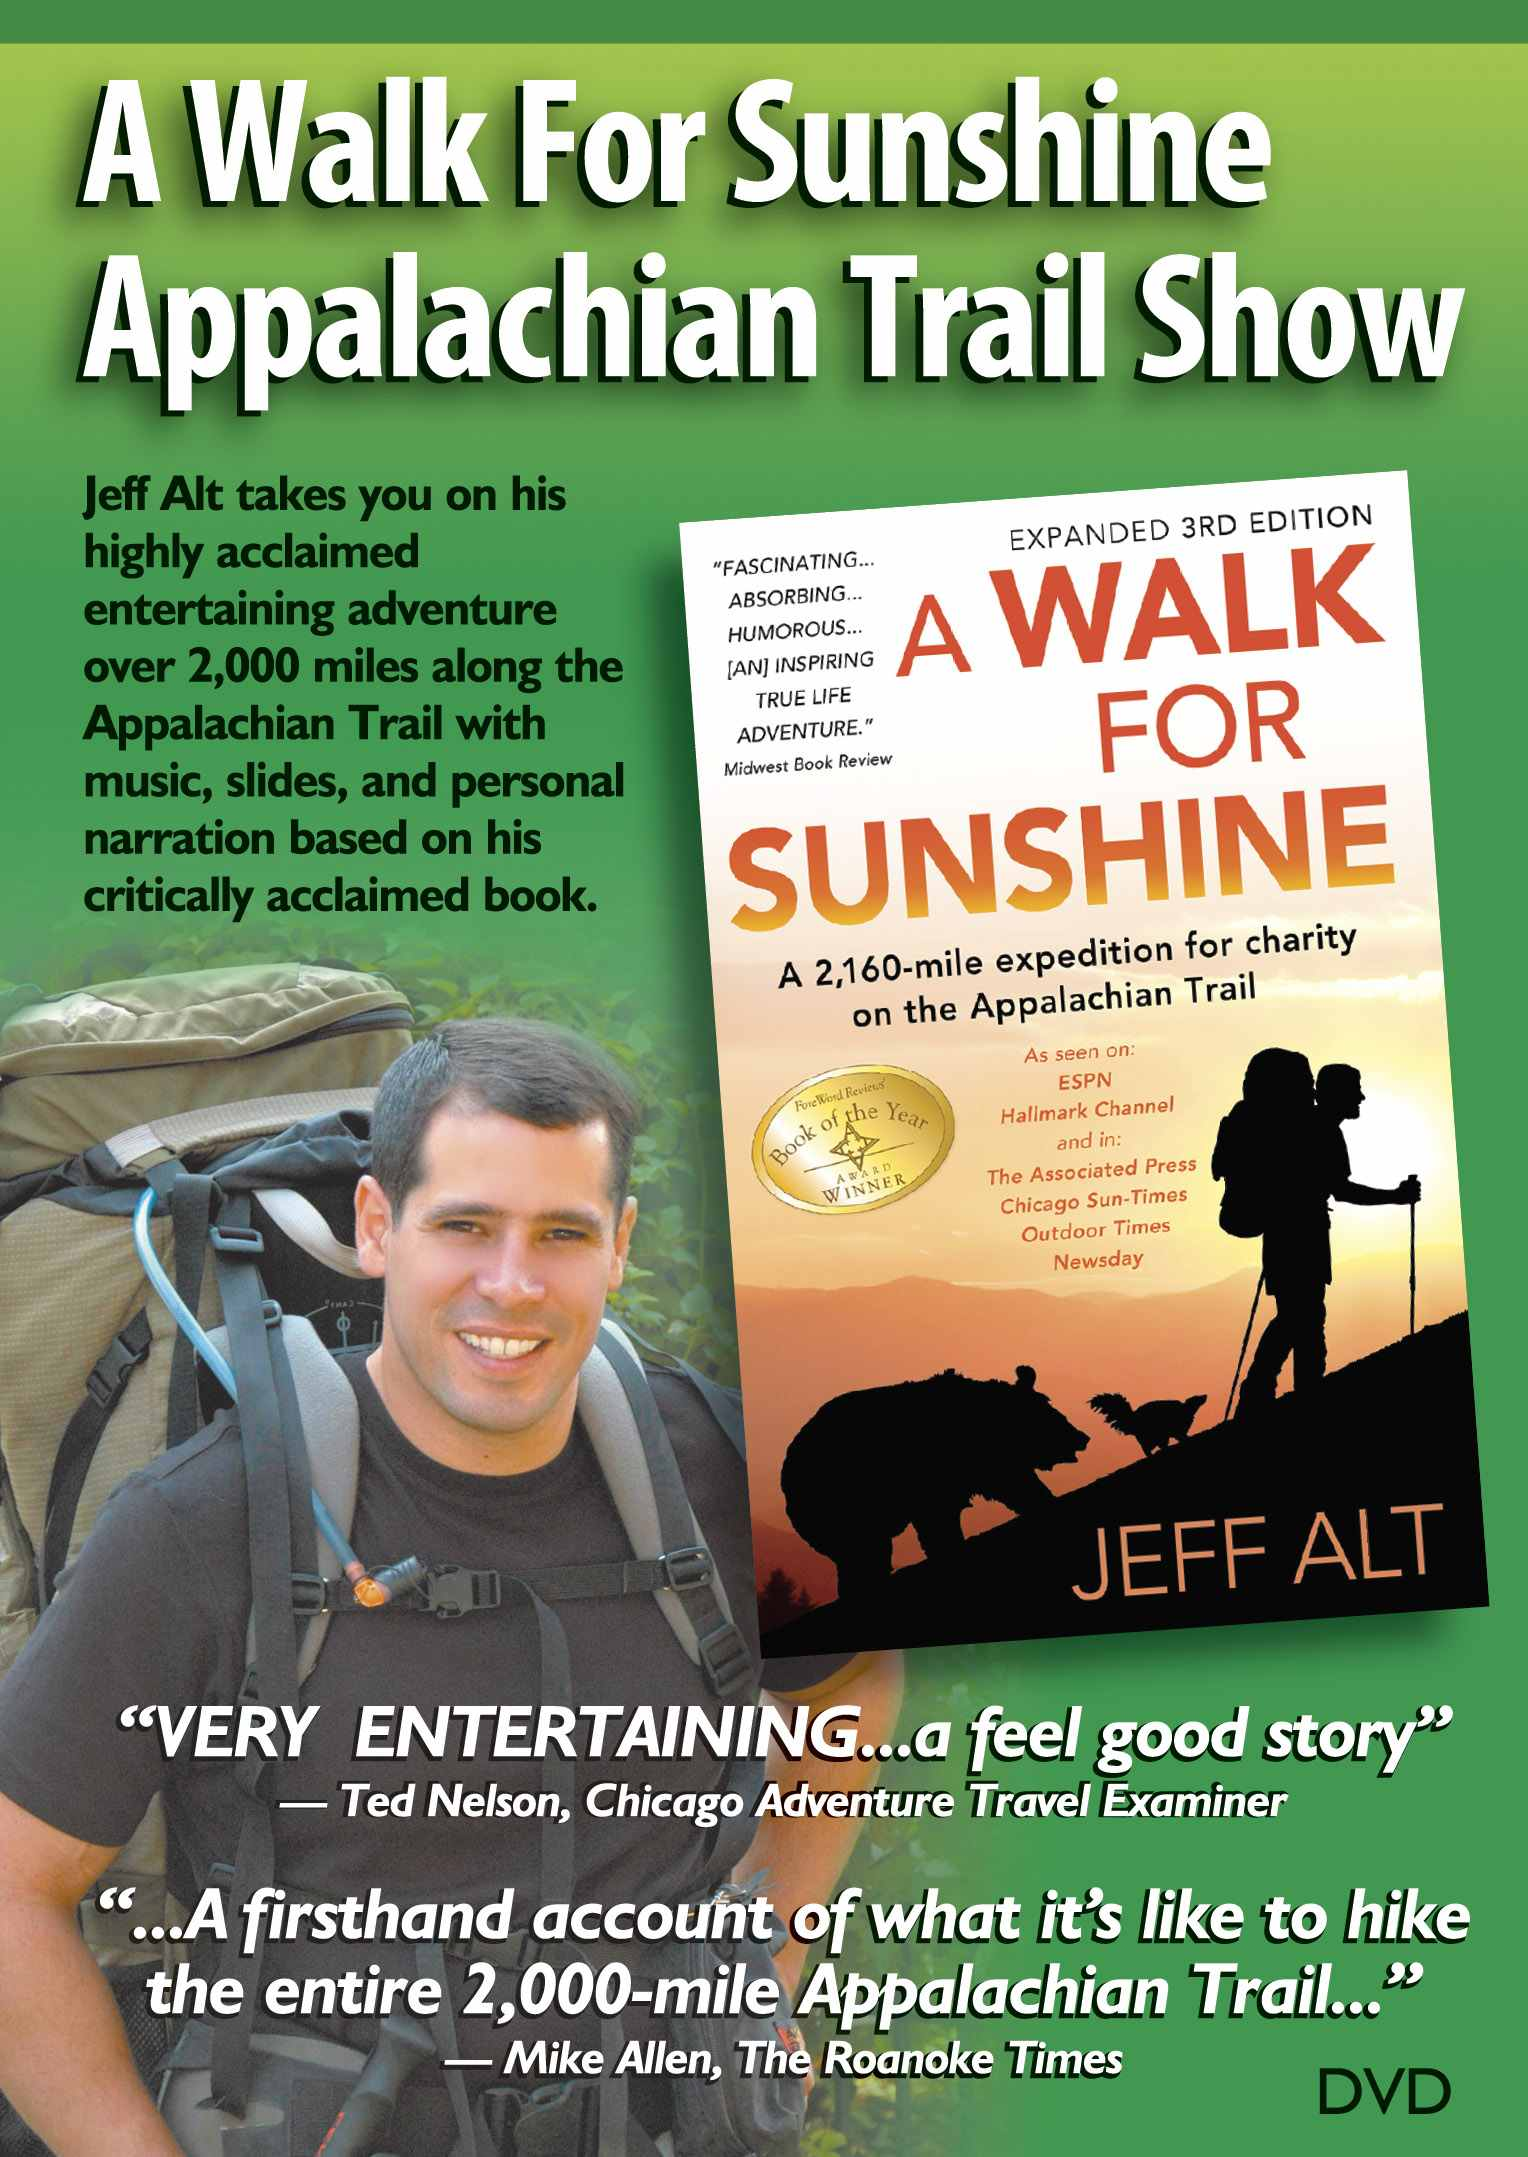 A Walk For Sunshine Appalachian Trail Show-DVD